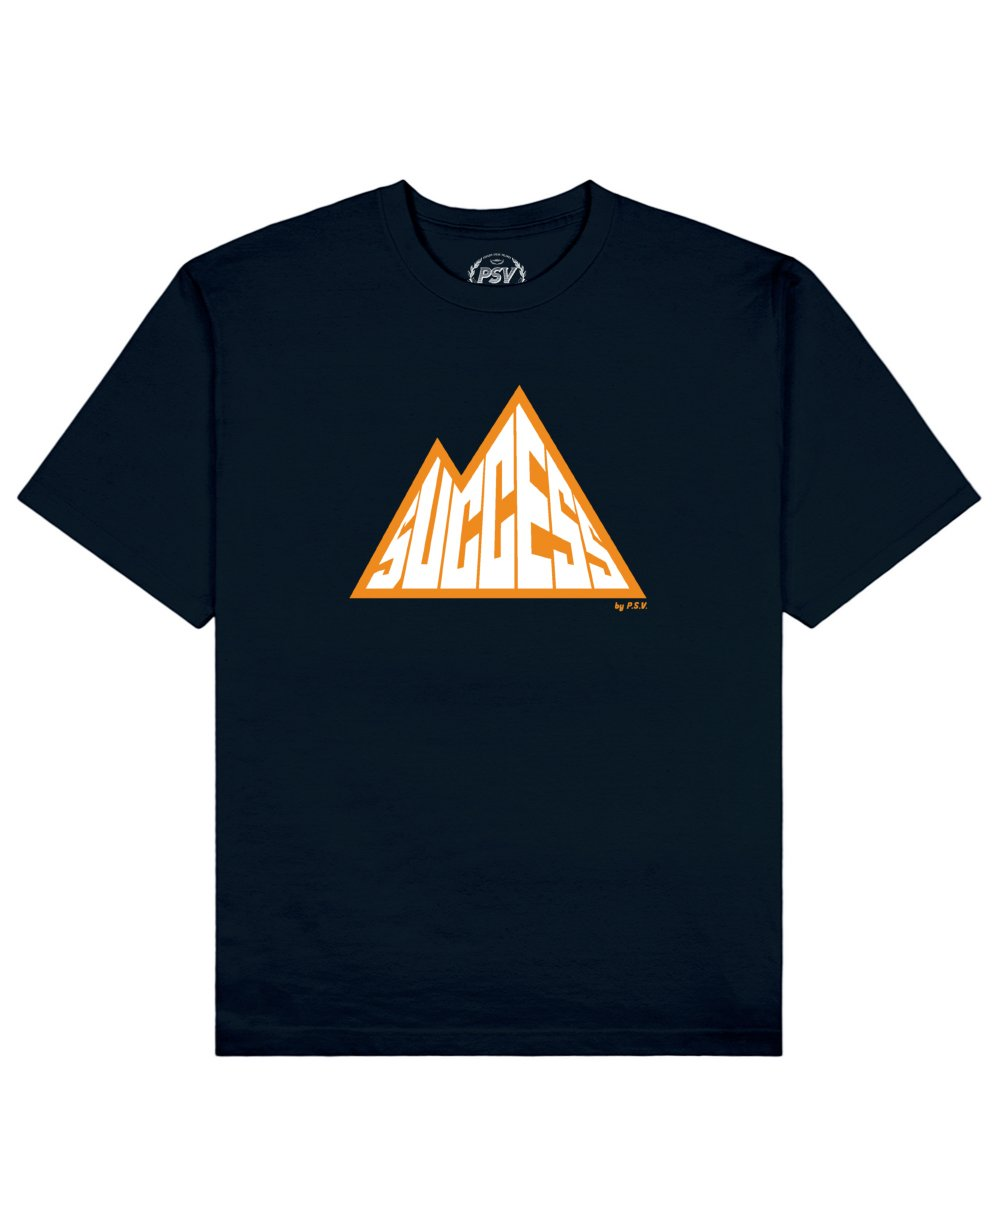 Success is a Mountain Print T-Shirt in Navy - T-Shirts - PSV - BRANMA